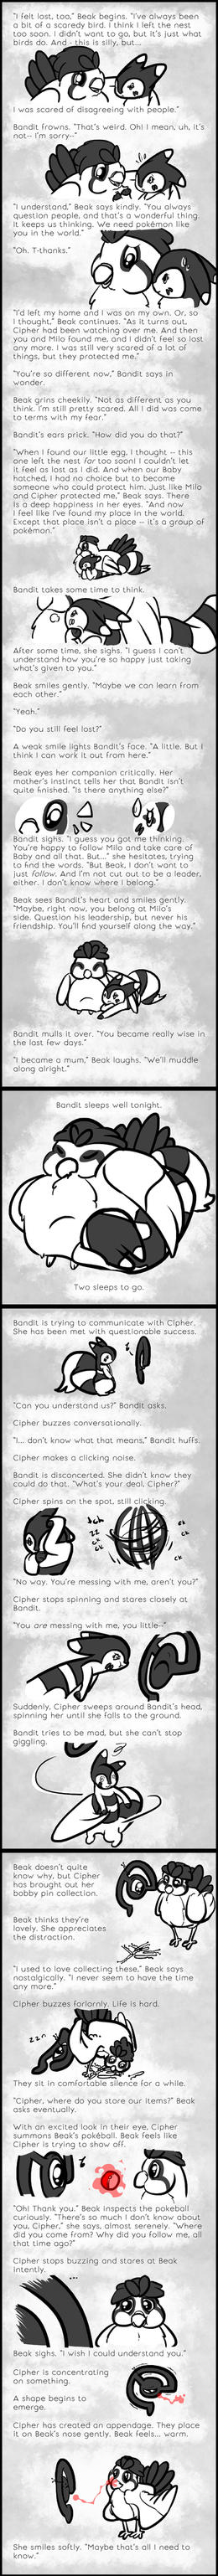 Courage - Event 06: Quiet Conversations (2) by Lost-Paperclip